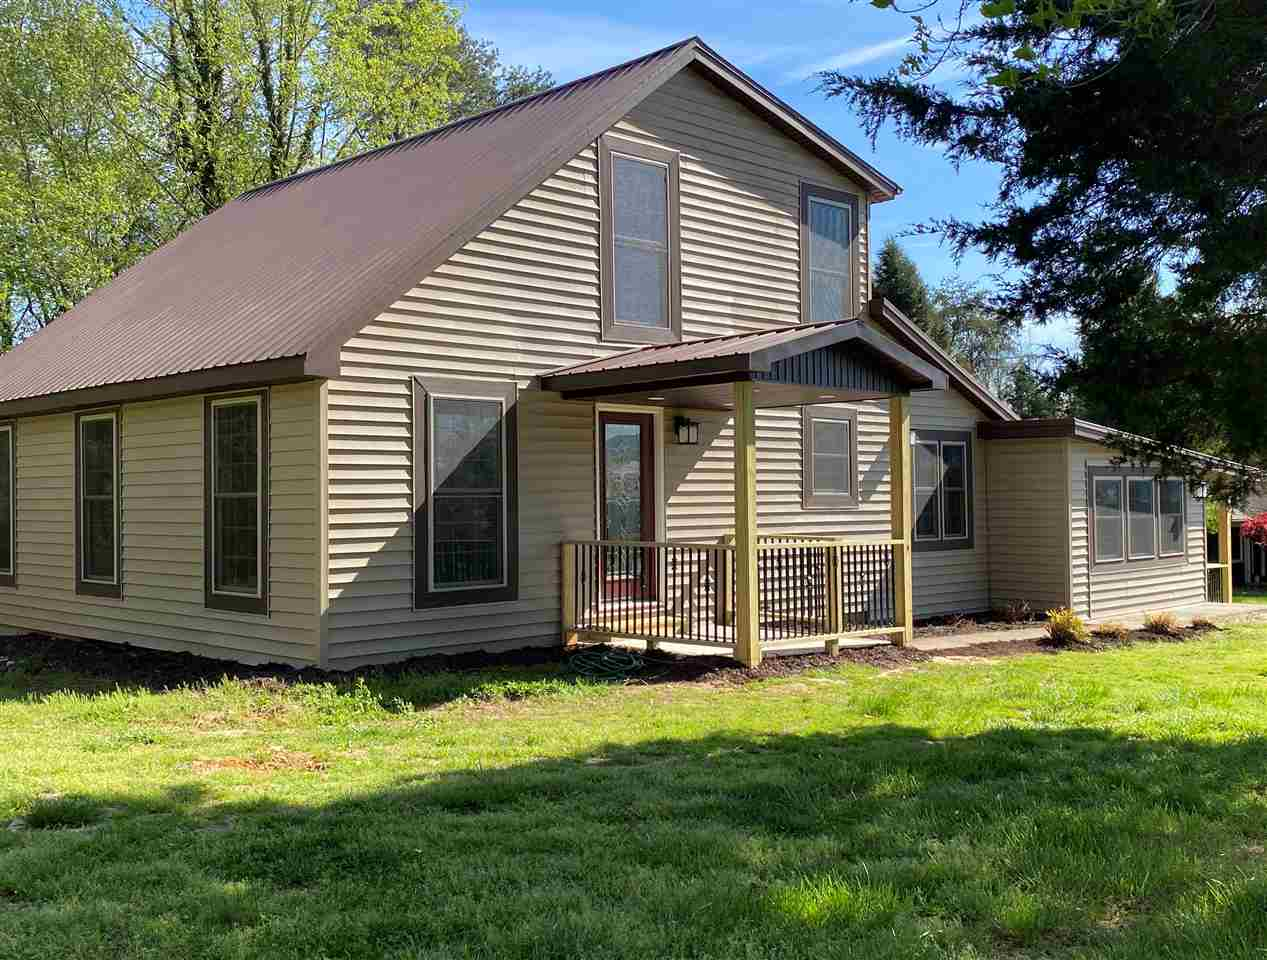 Houses For Sale In Levittown Pa